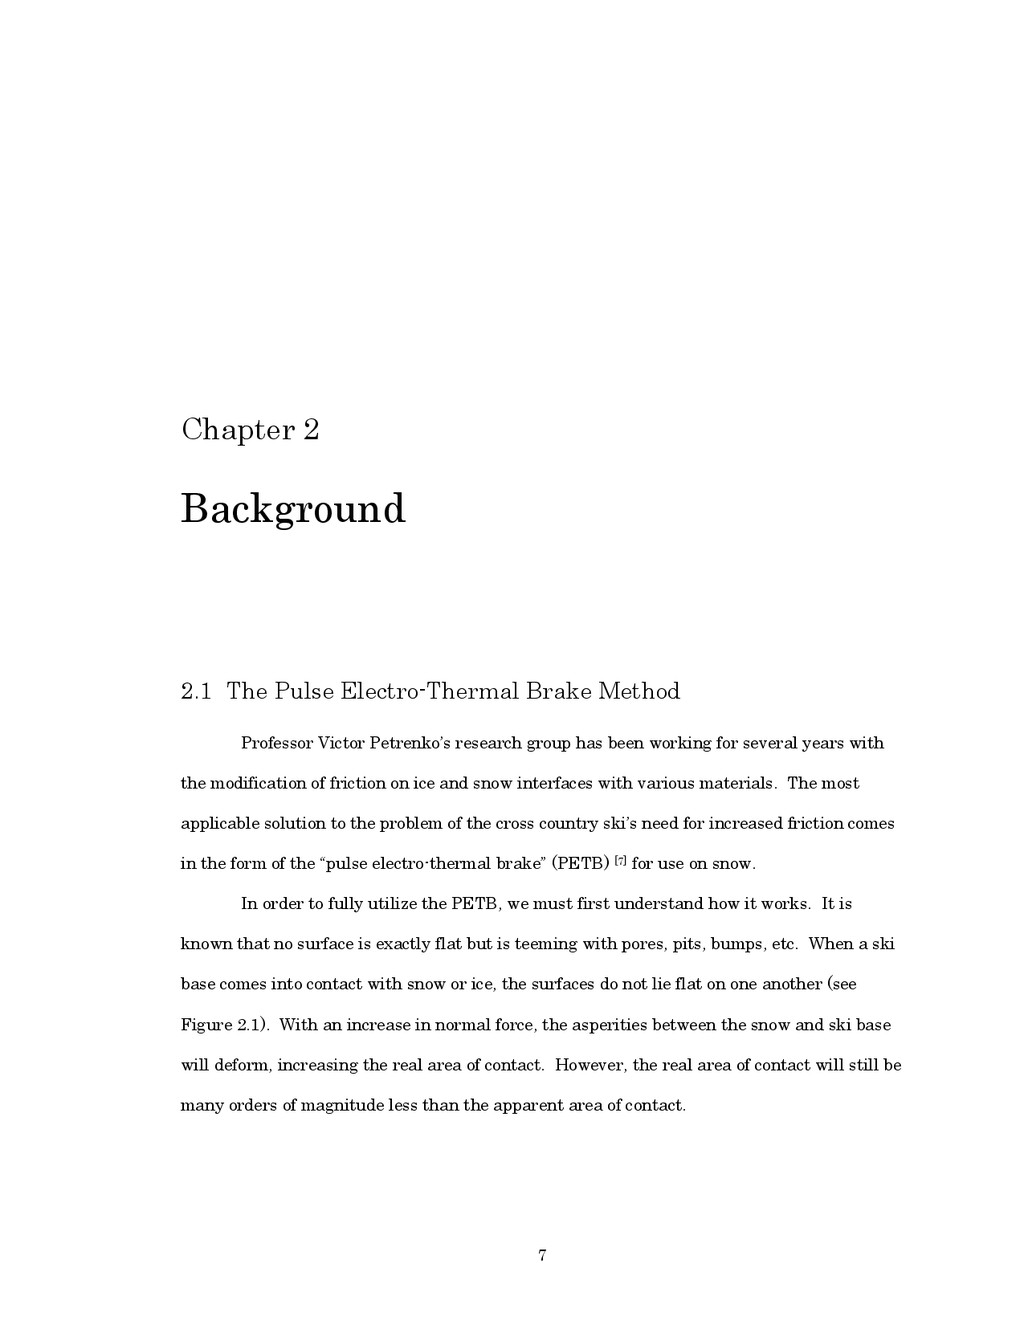 7 Chapter 2 Background 2.1 The Pulse Electro-Th...